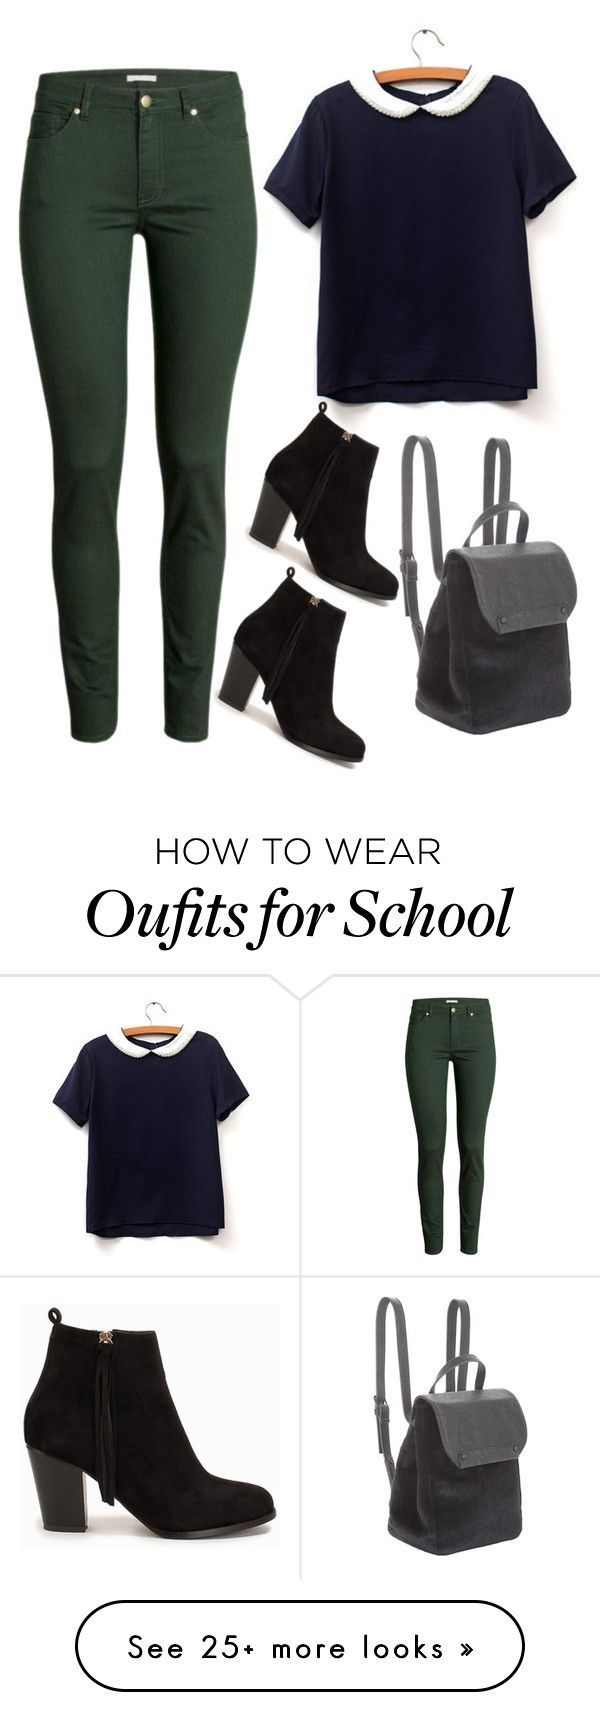 """school is my problem"" by ziva-vrabac on Polyvore featuring H&M, BCBGeneration and Nly Shoes"